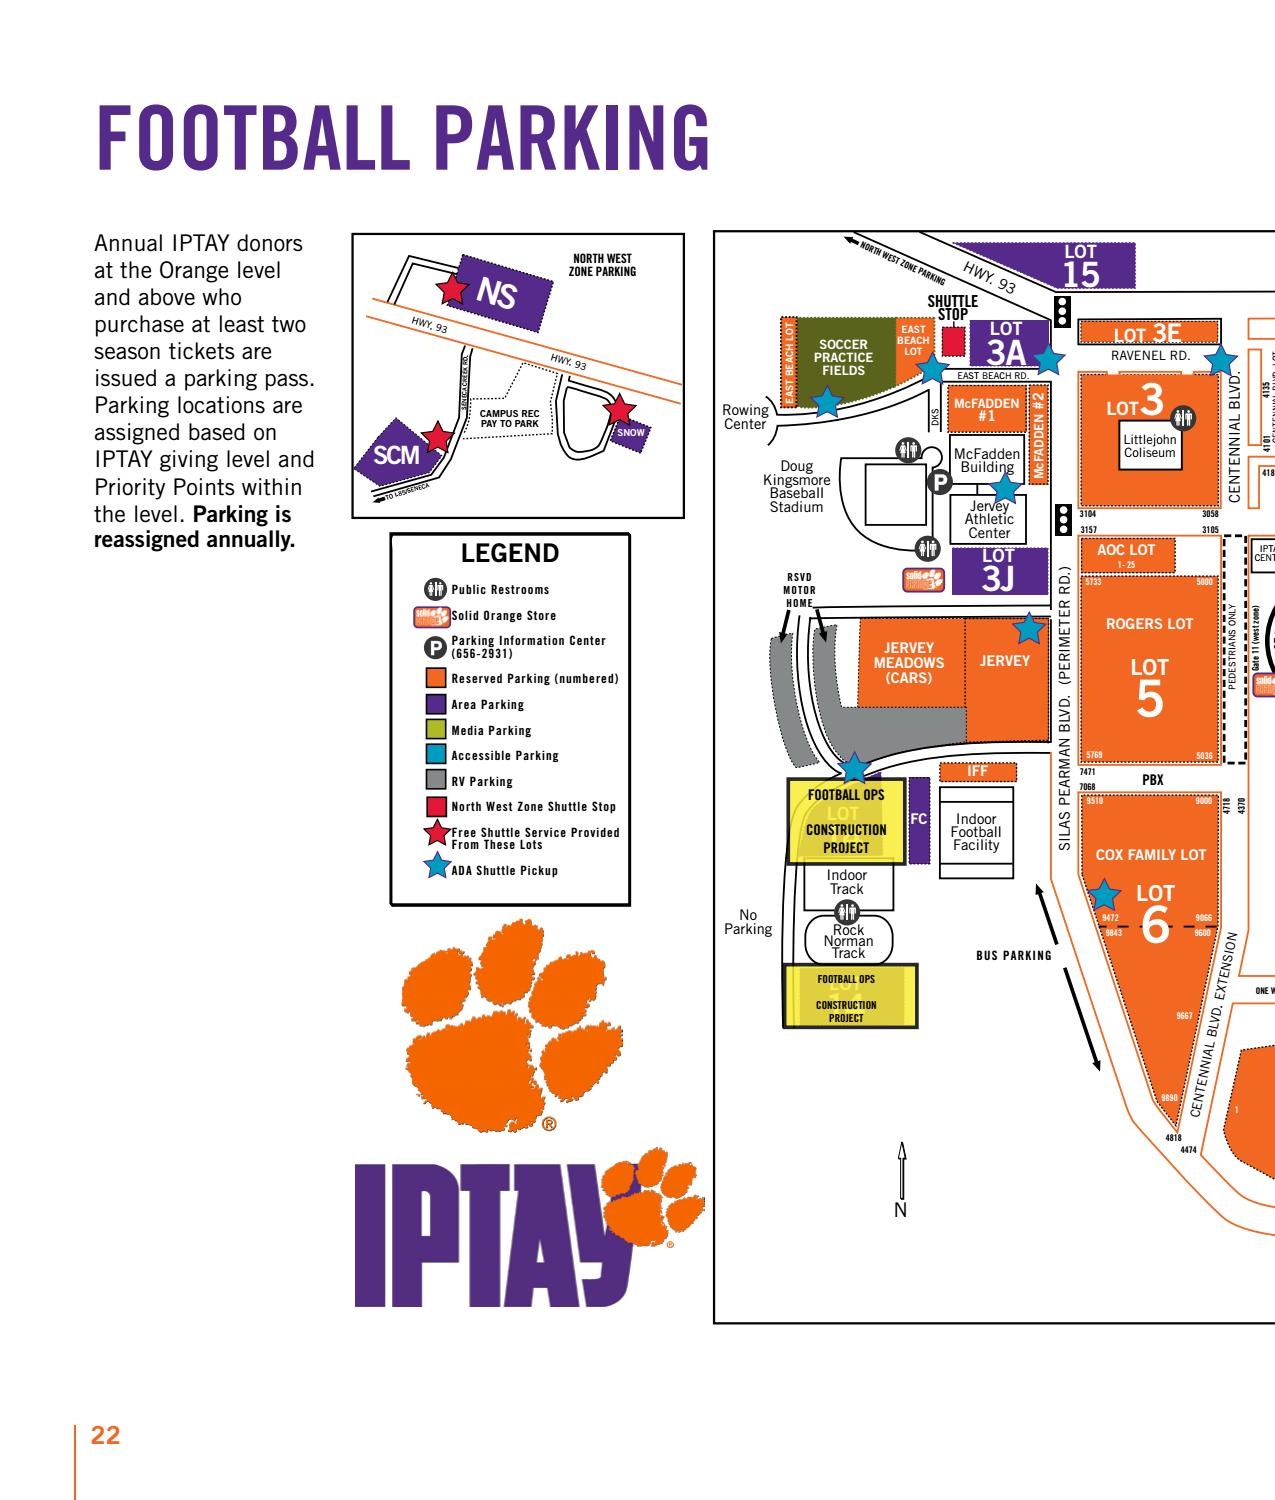 Clemson Football Parking Map on